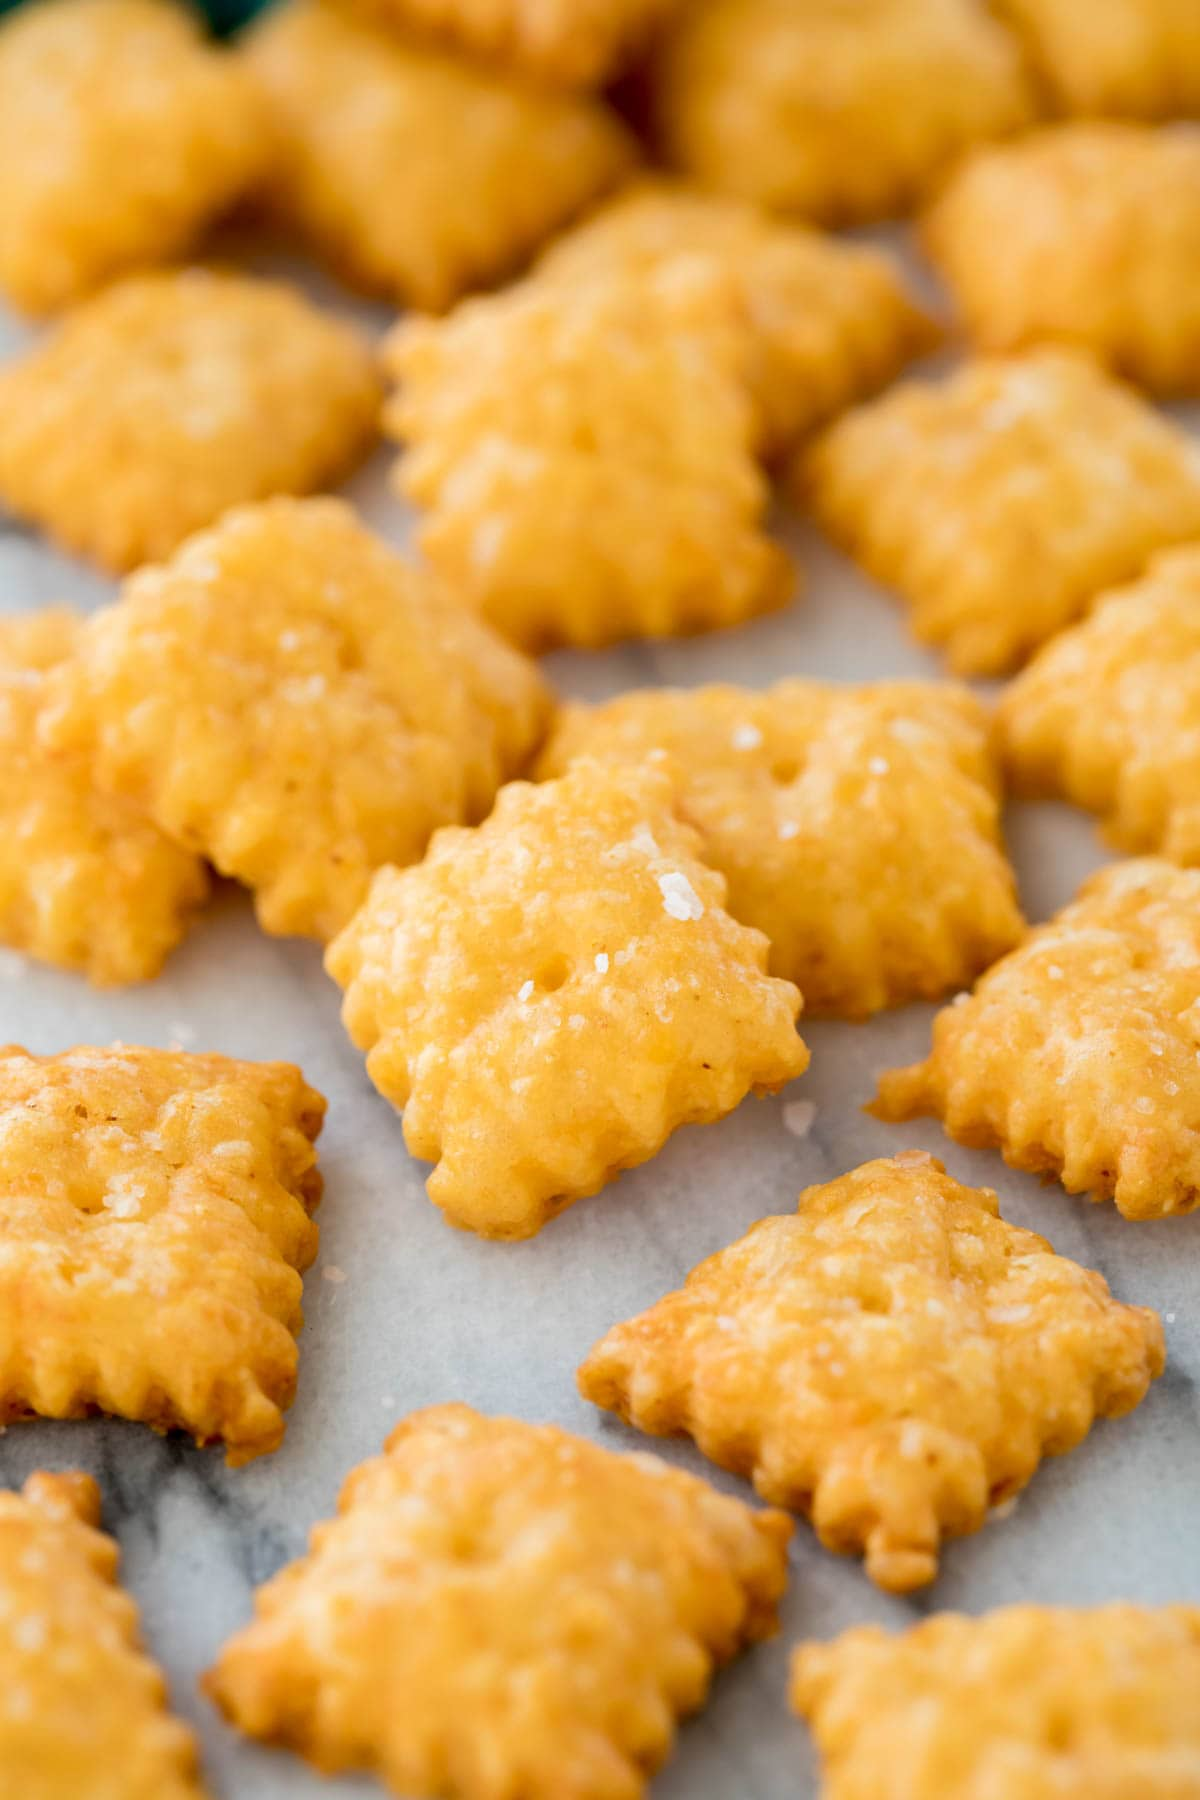 Zoomed-in view of homemade cheese crackers with frilled edges and topped with sea salt